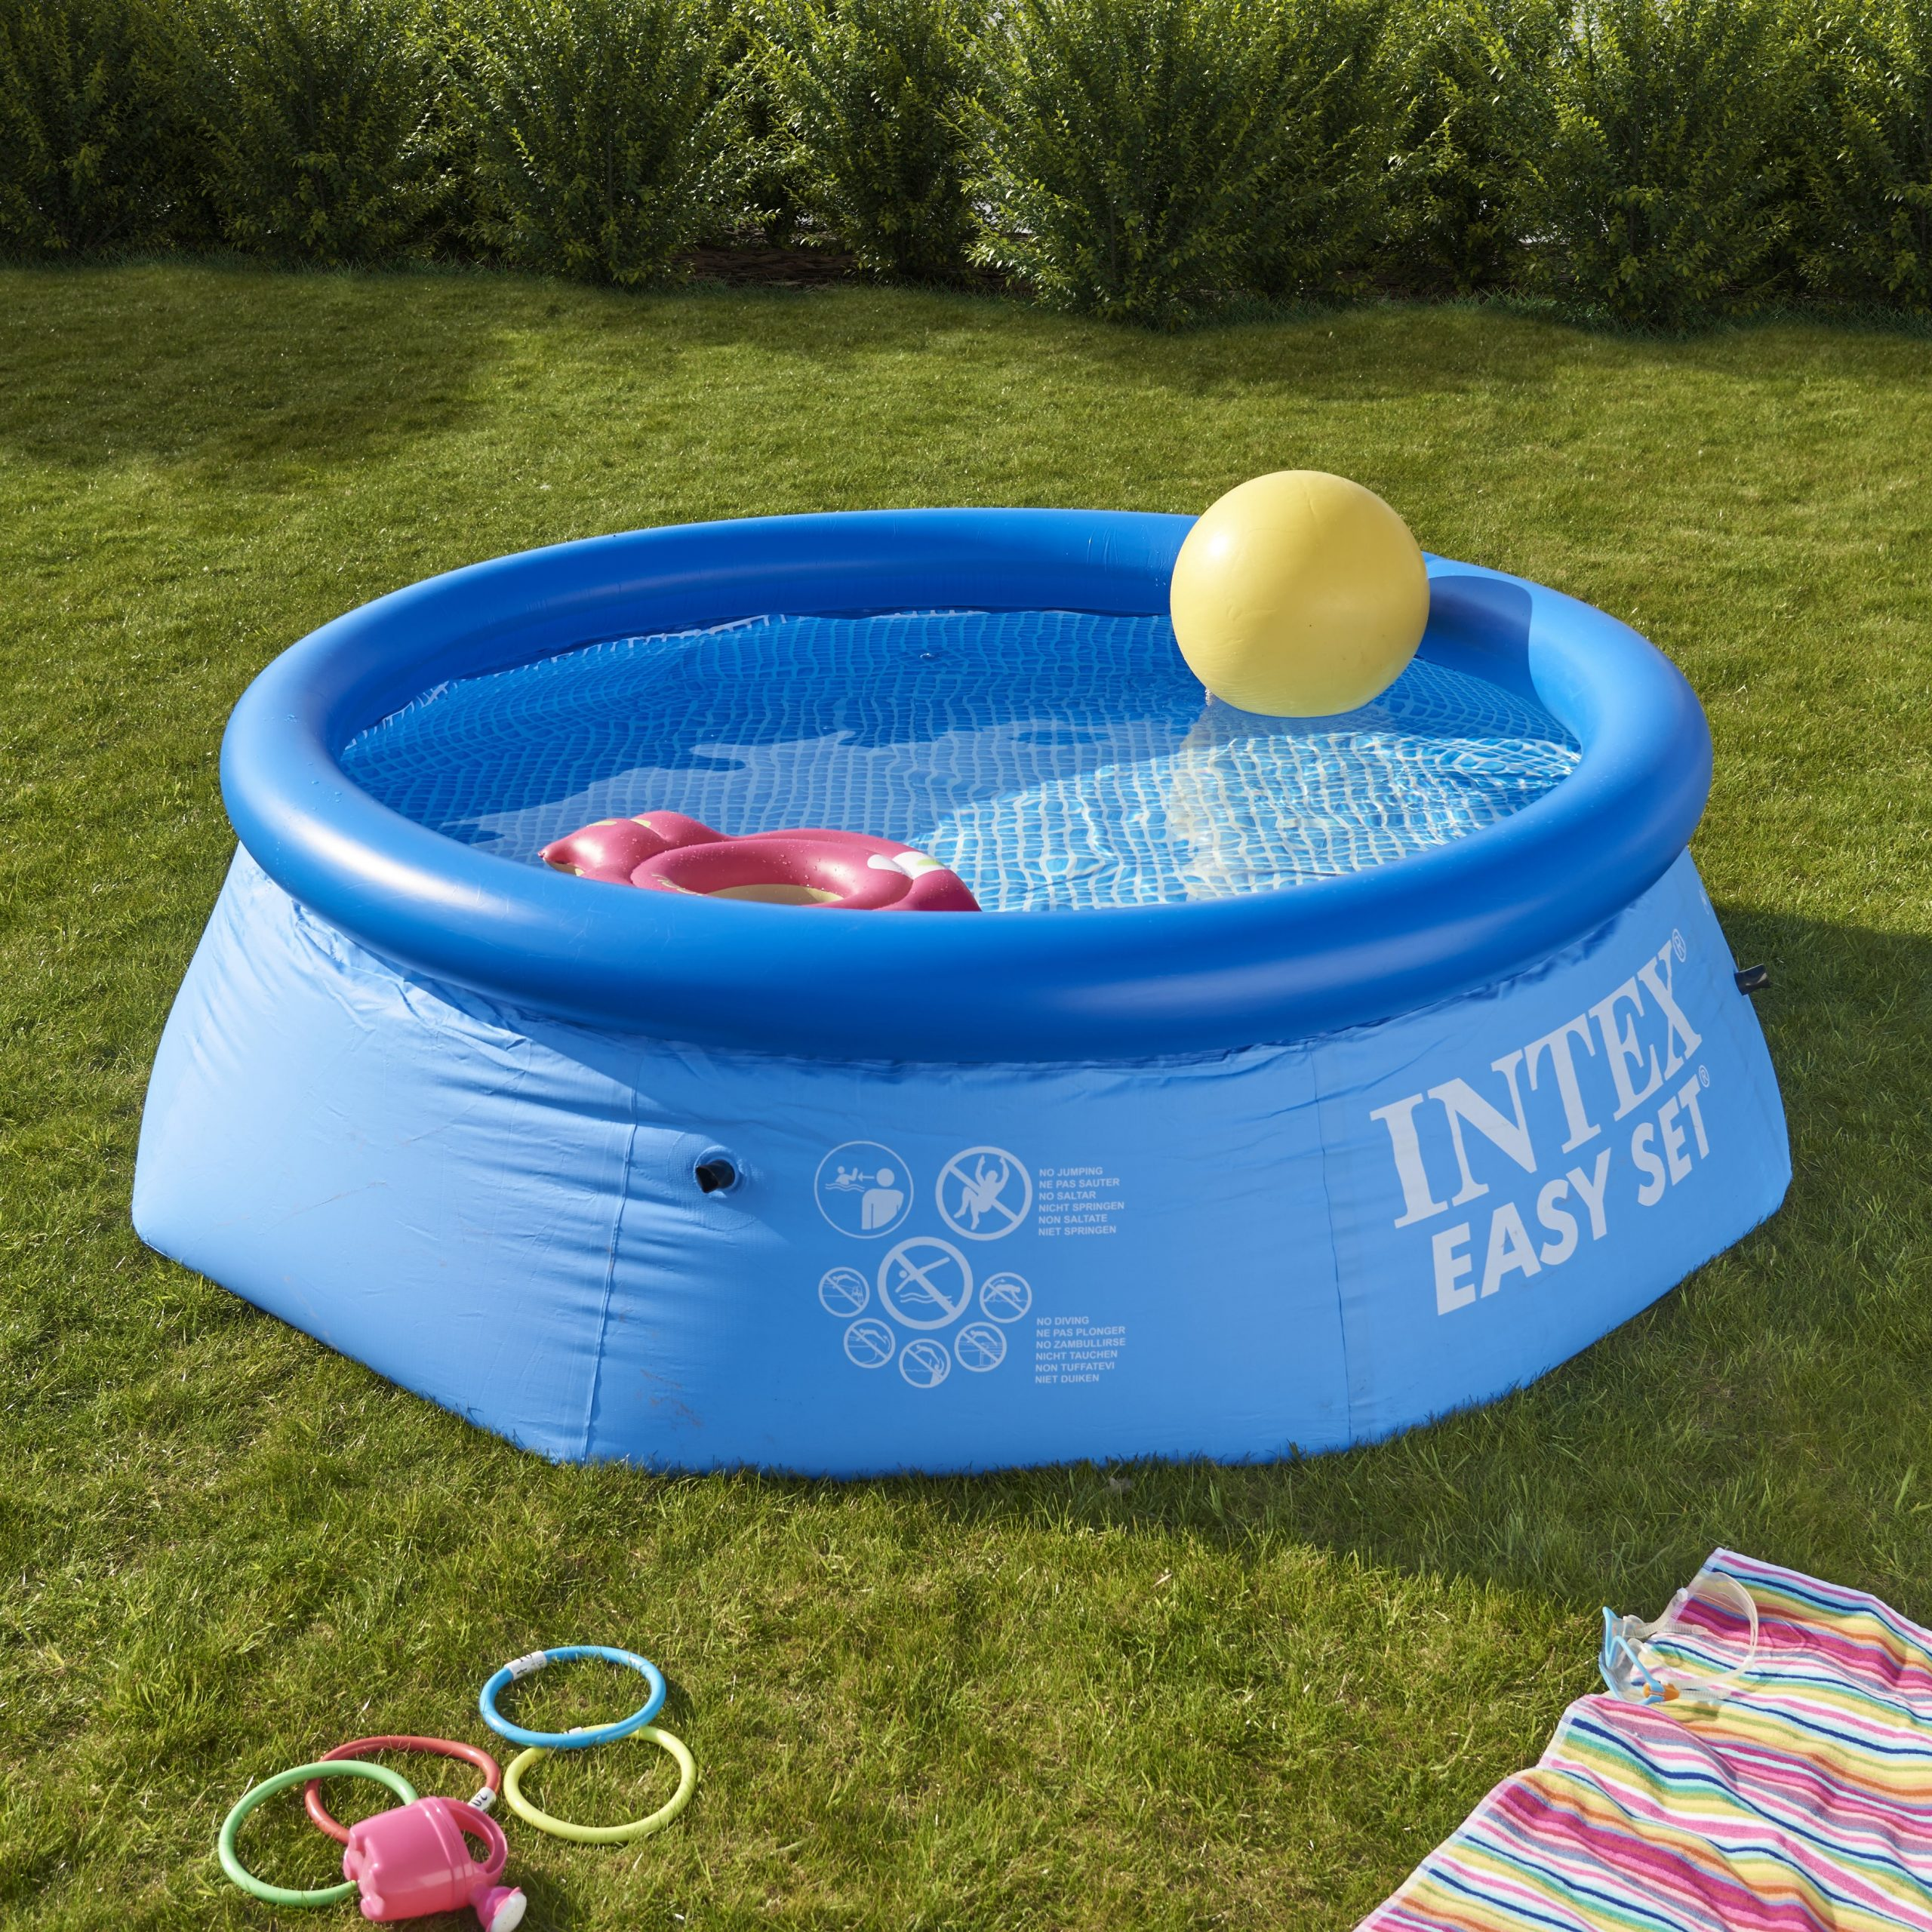 Piscine Autoportante Intex Easy Set Diam. 2.44 M X H. 0.76 M serapportantà Prix Piscine Intex